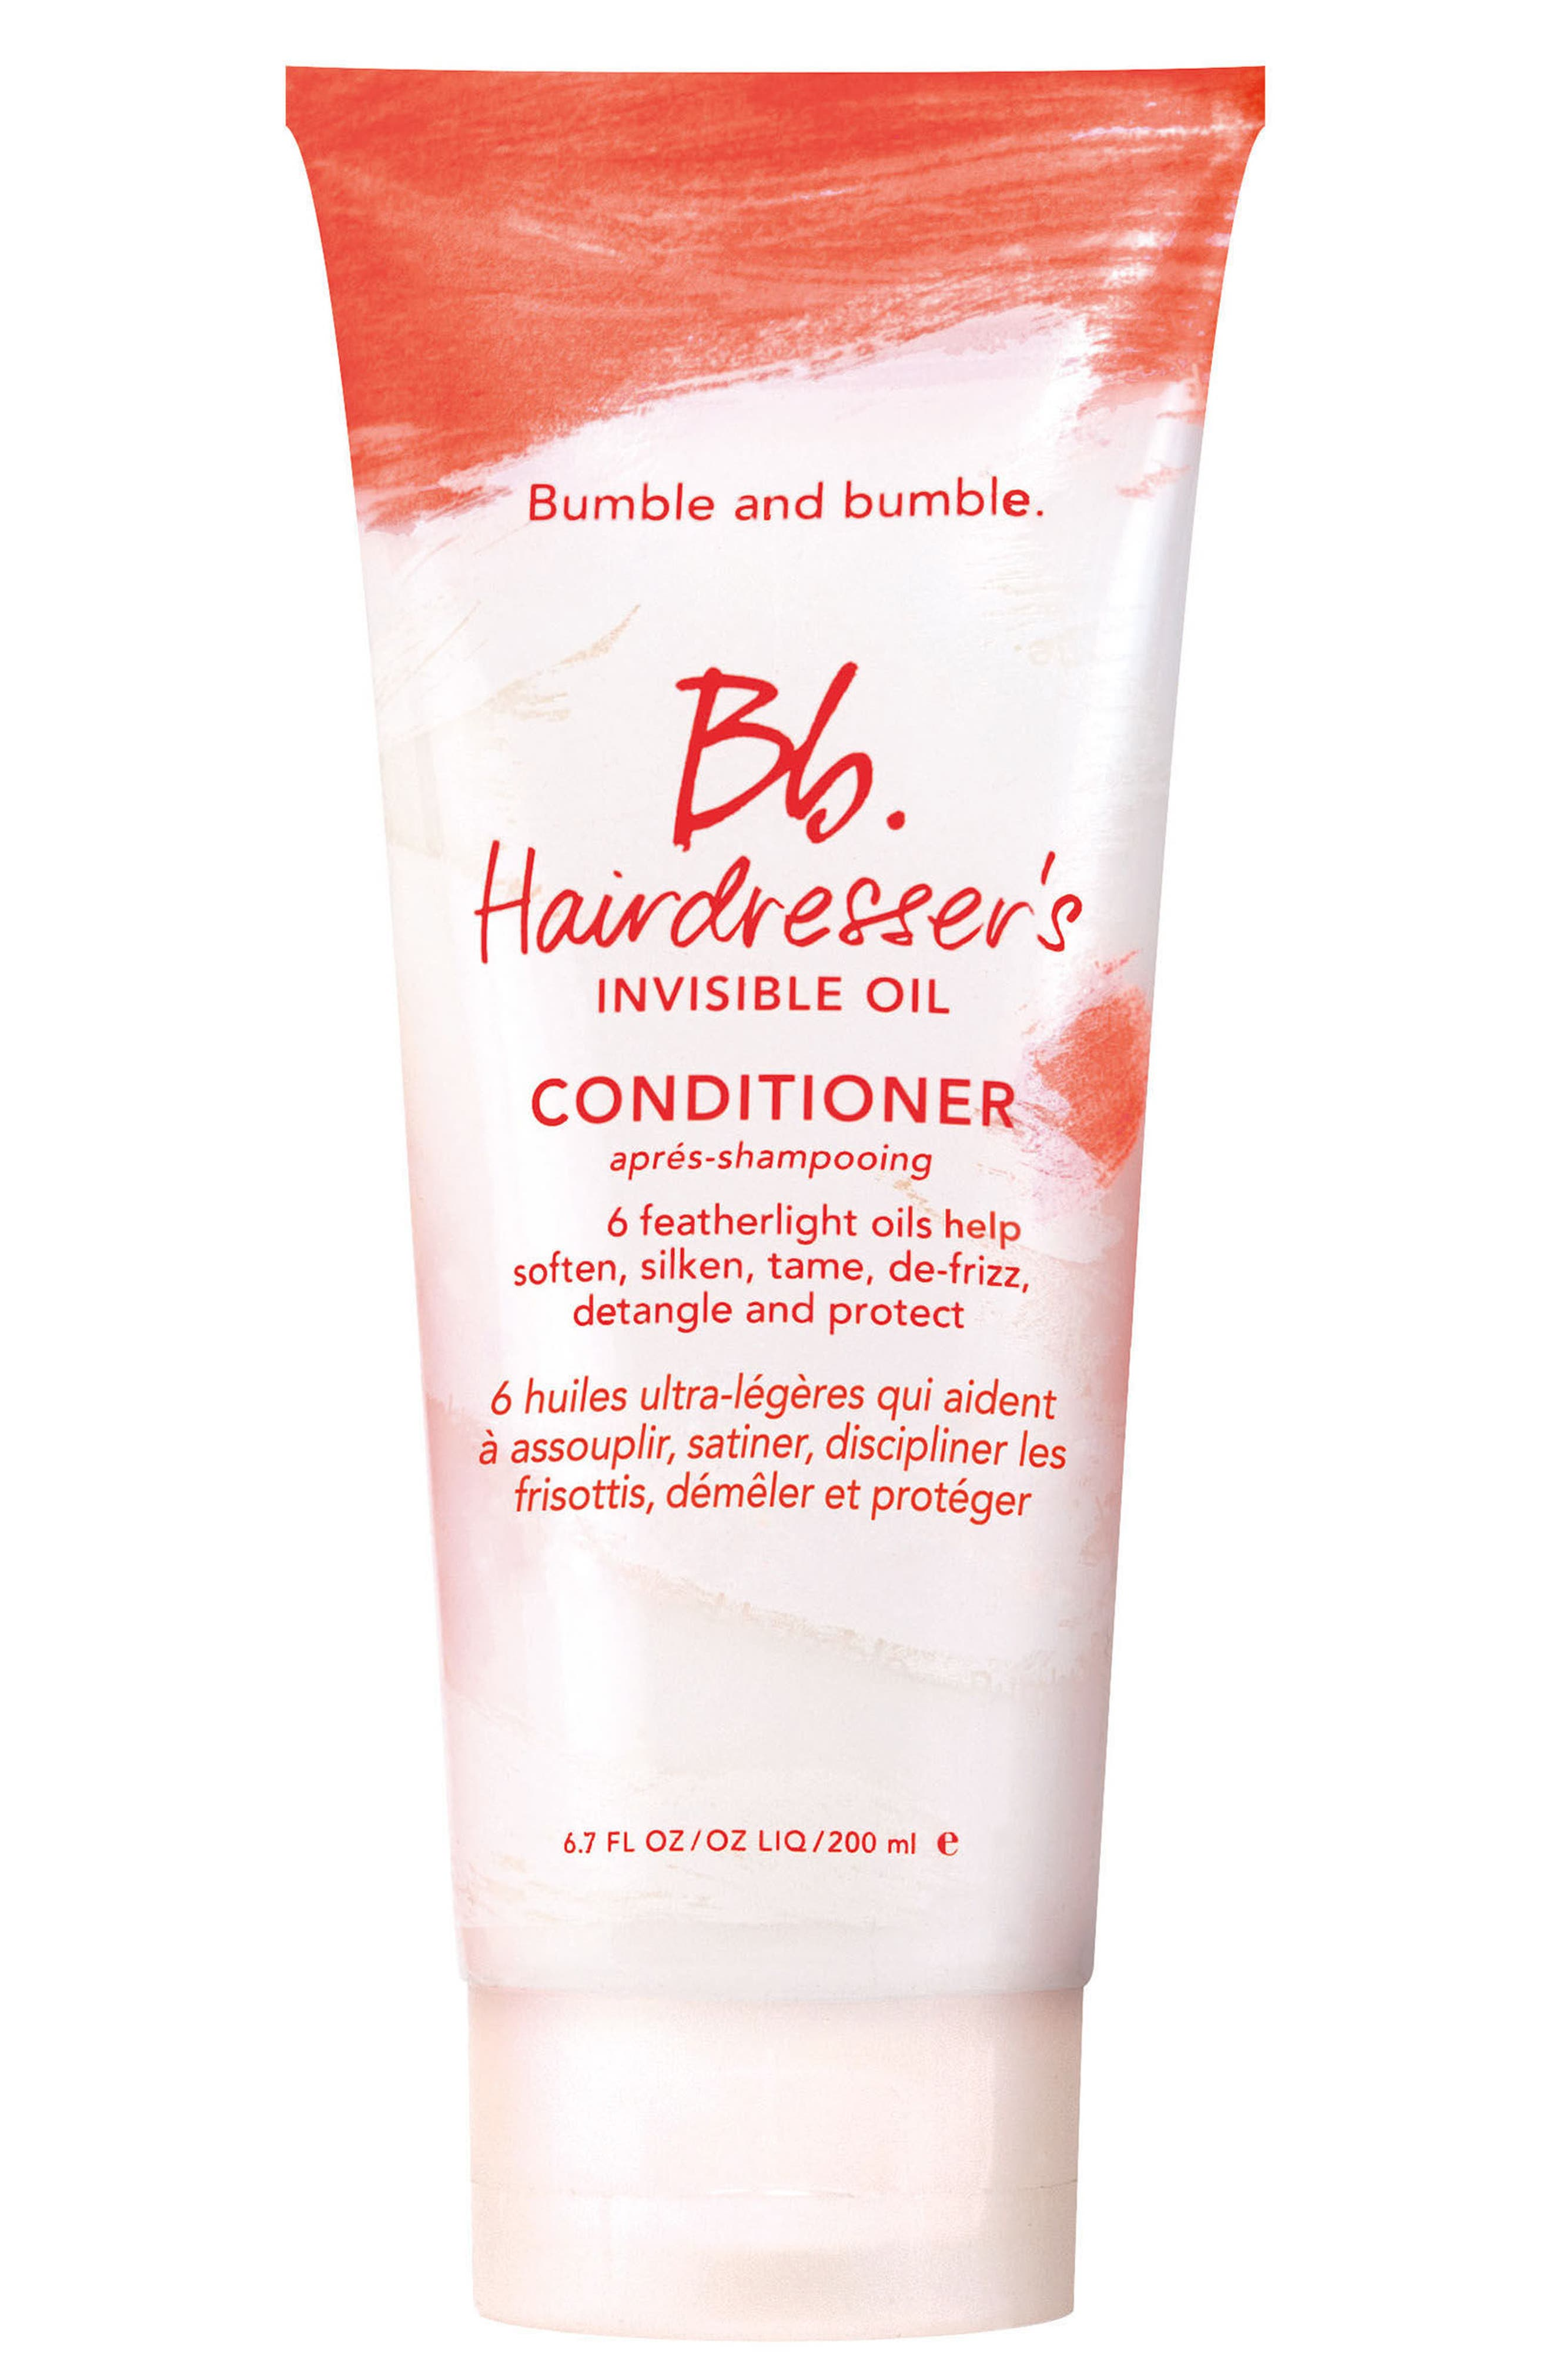 Alternate Image 1 Selected - Bumble and bumble Hairdresser's Invisible Oil Conditioner